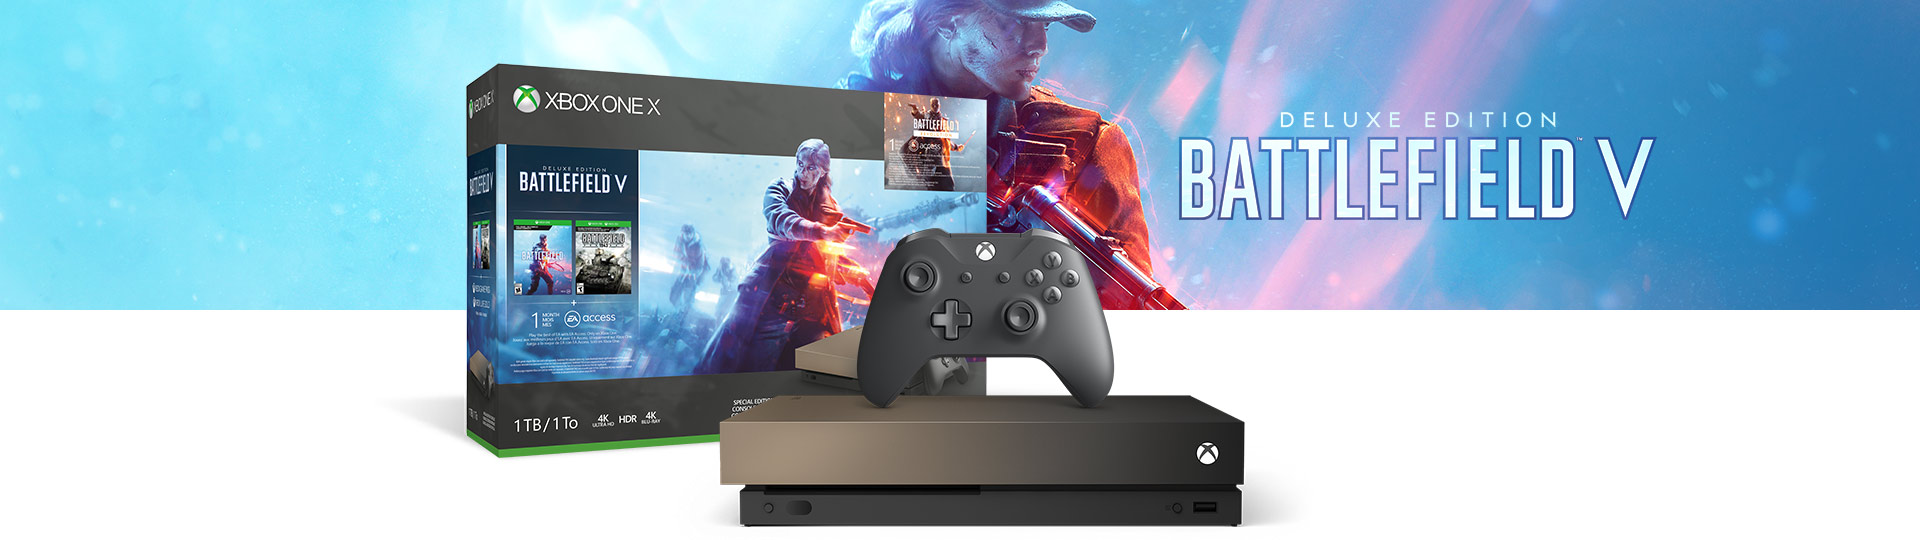 Xbox One X and Controller next to the Xbox One X Battlefield V Gold Rush Special Edition 1 terabyte product box